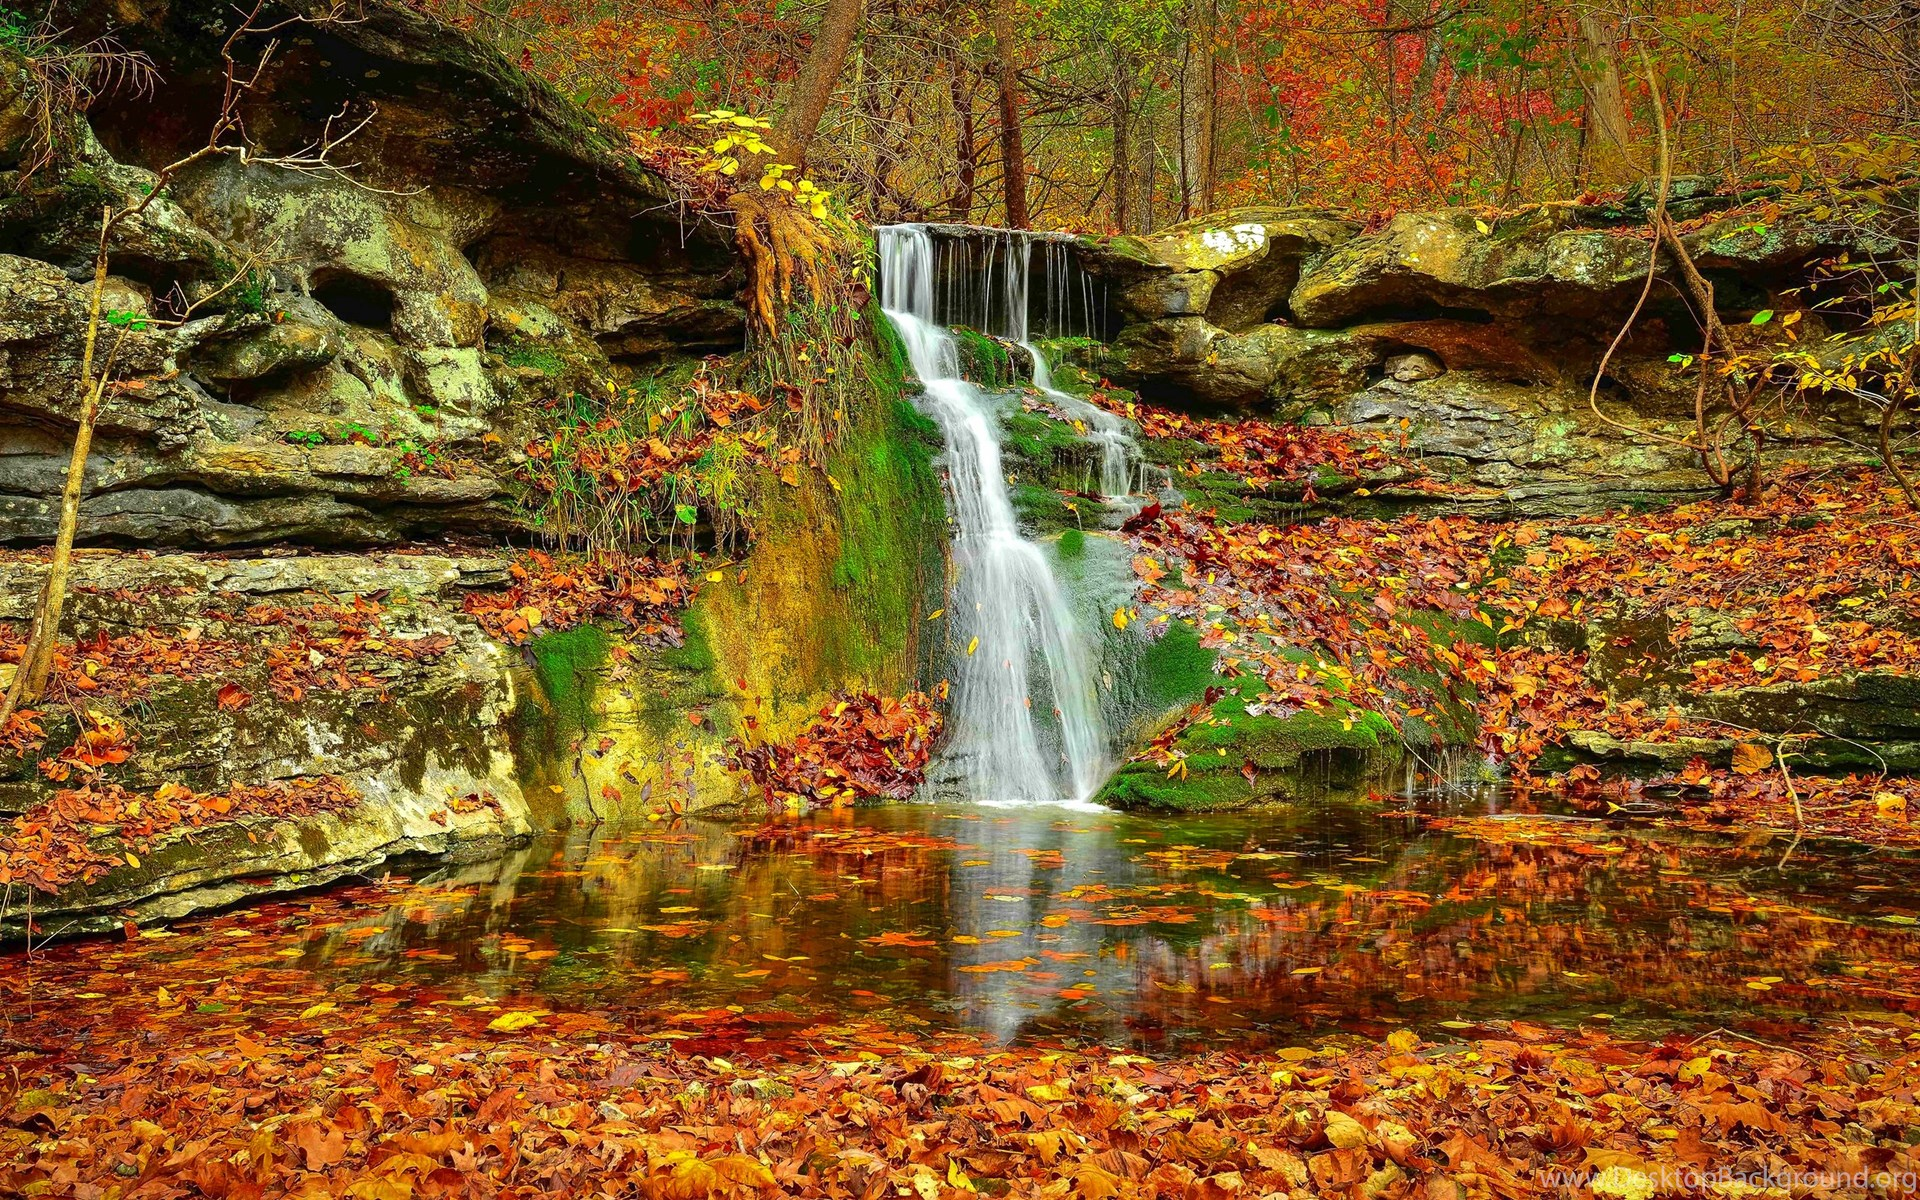 autumn fall waterfall nature leaves forest foliage stream rocks colorful 4k wallpapers desktop lovely landscape backgrounds background serenity natural 1080p